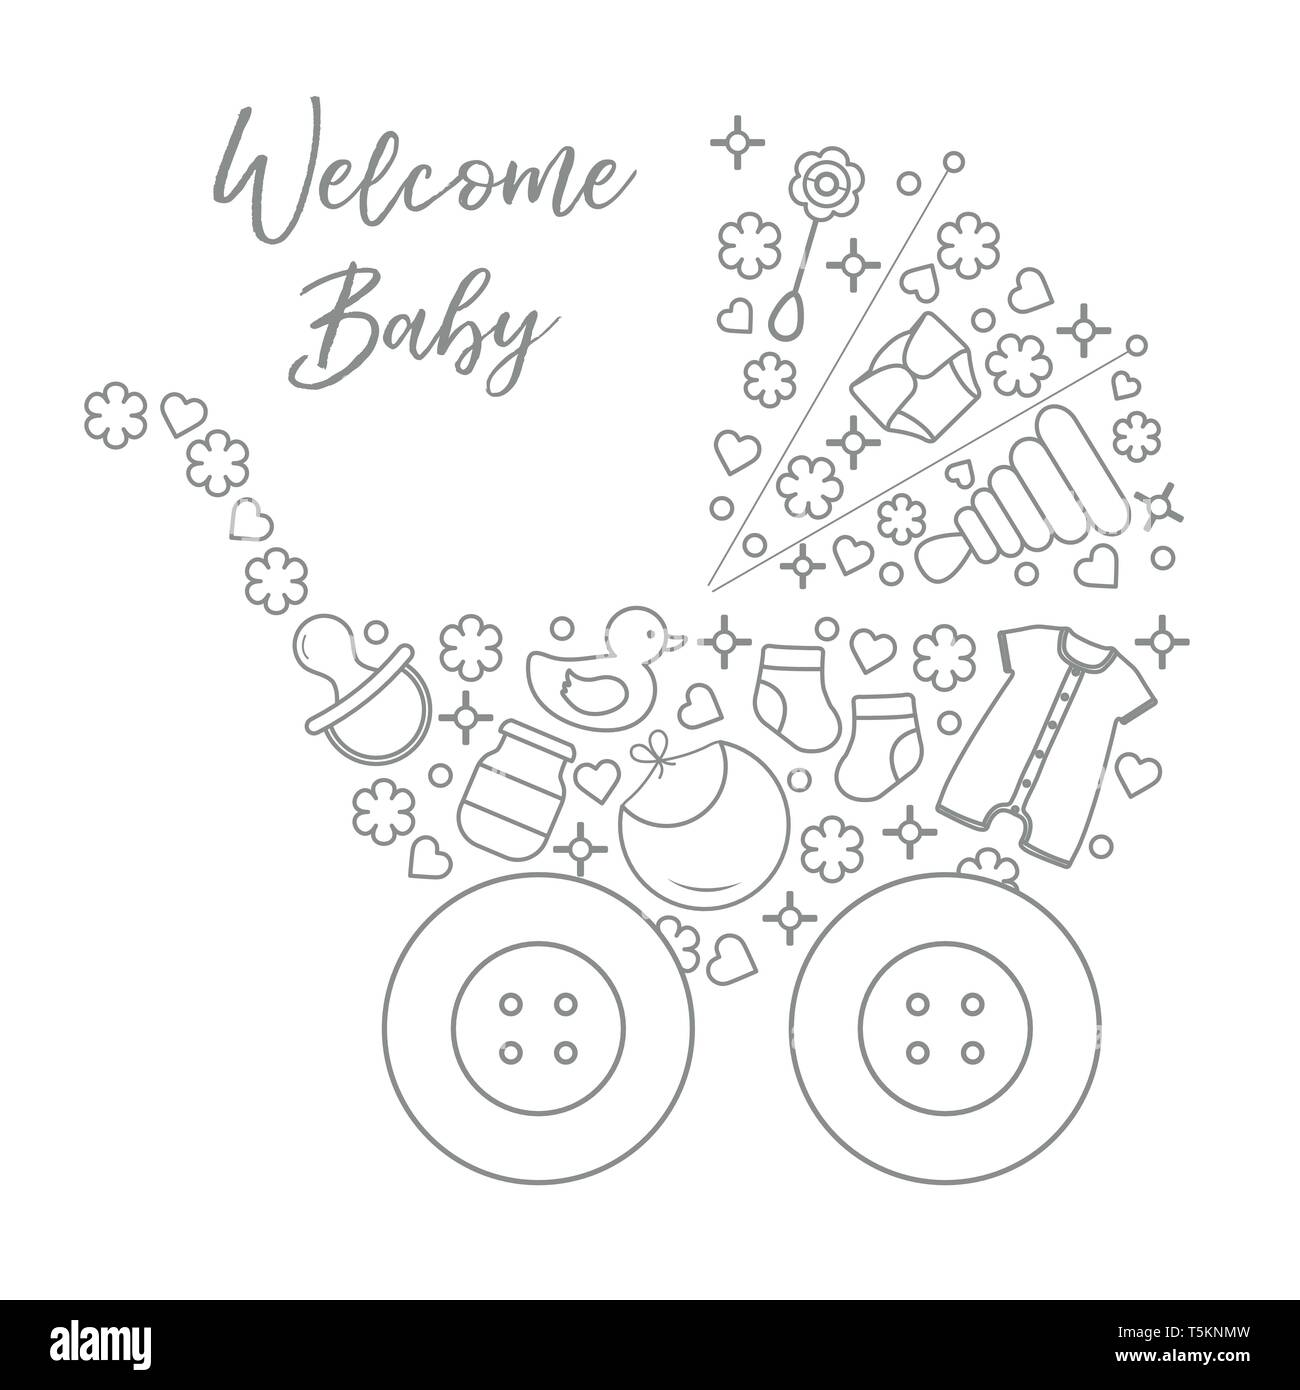 Vector illustration with baby stroller, goods for babies. Newborn baby background. Baby nipple, socks, diaper, bodysuit, duck, bib, baby food jar, pyr - Stock Image